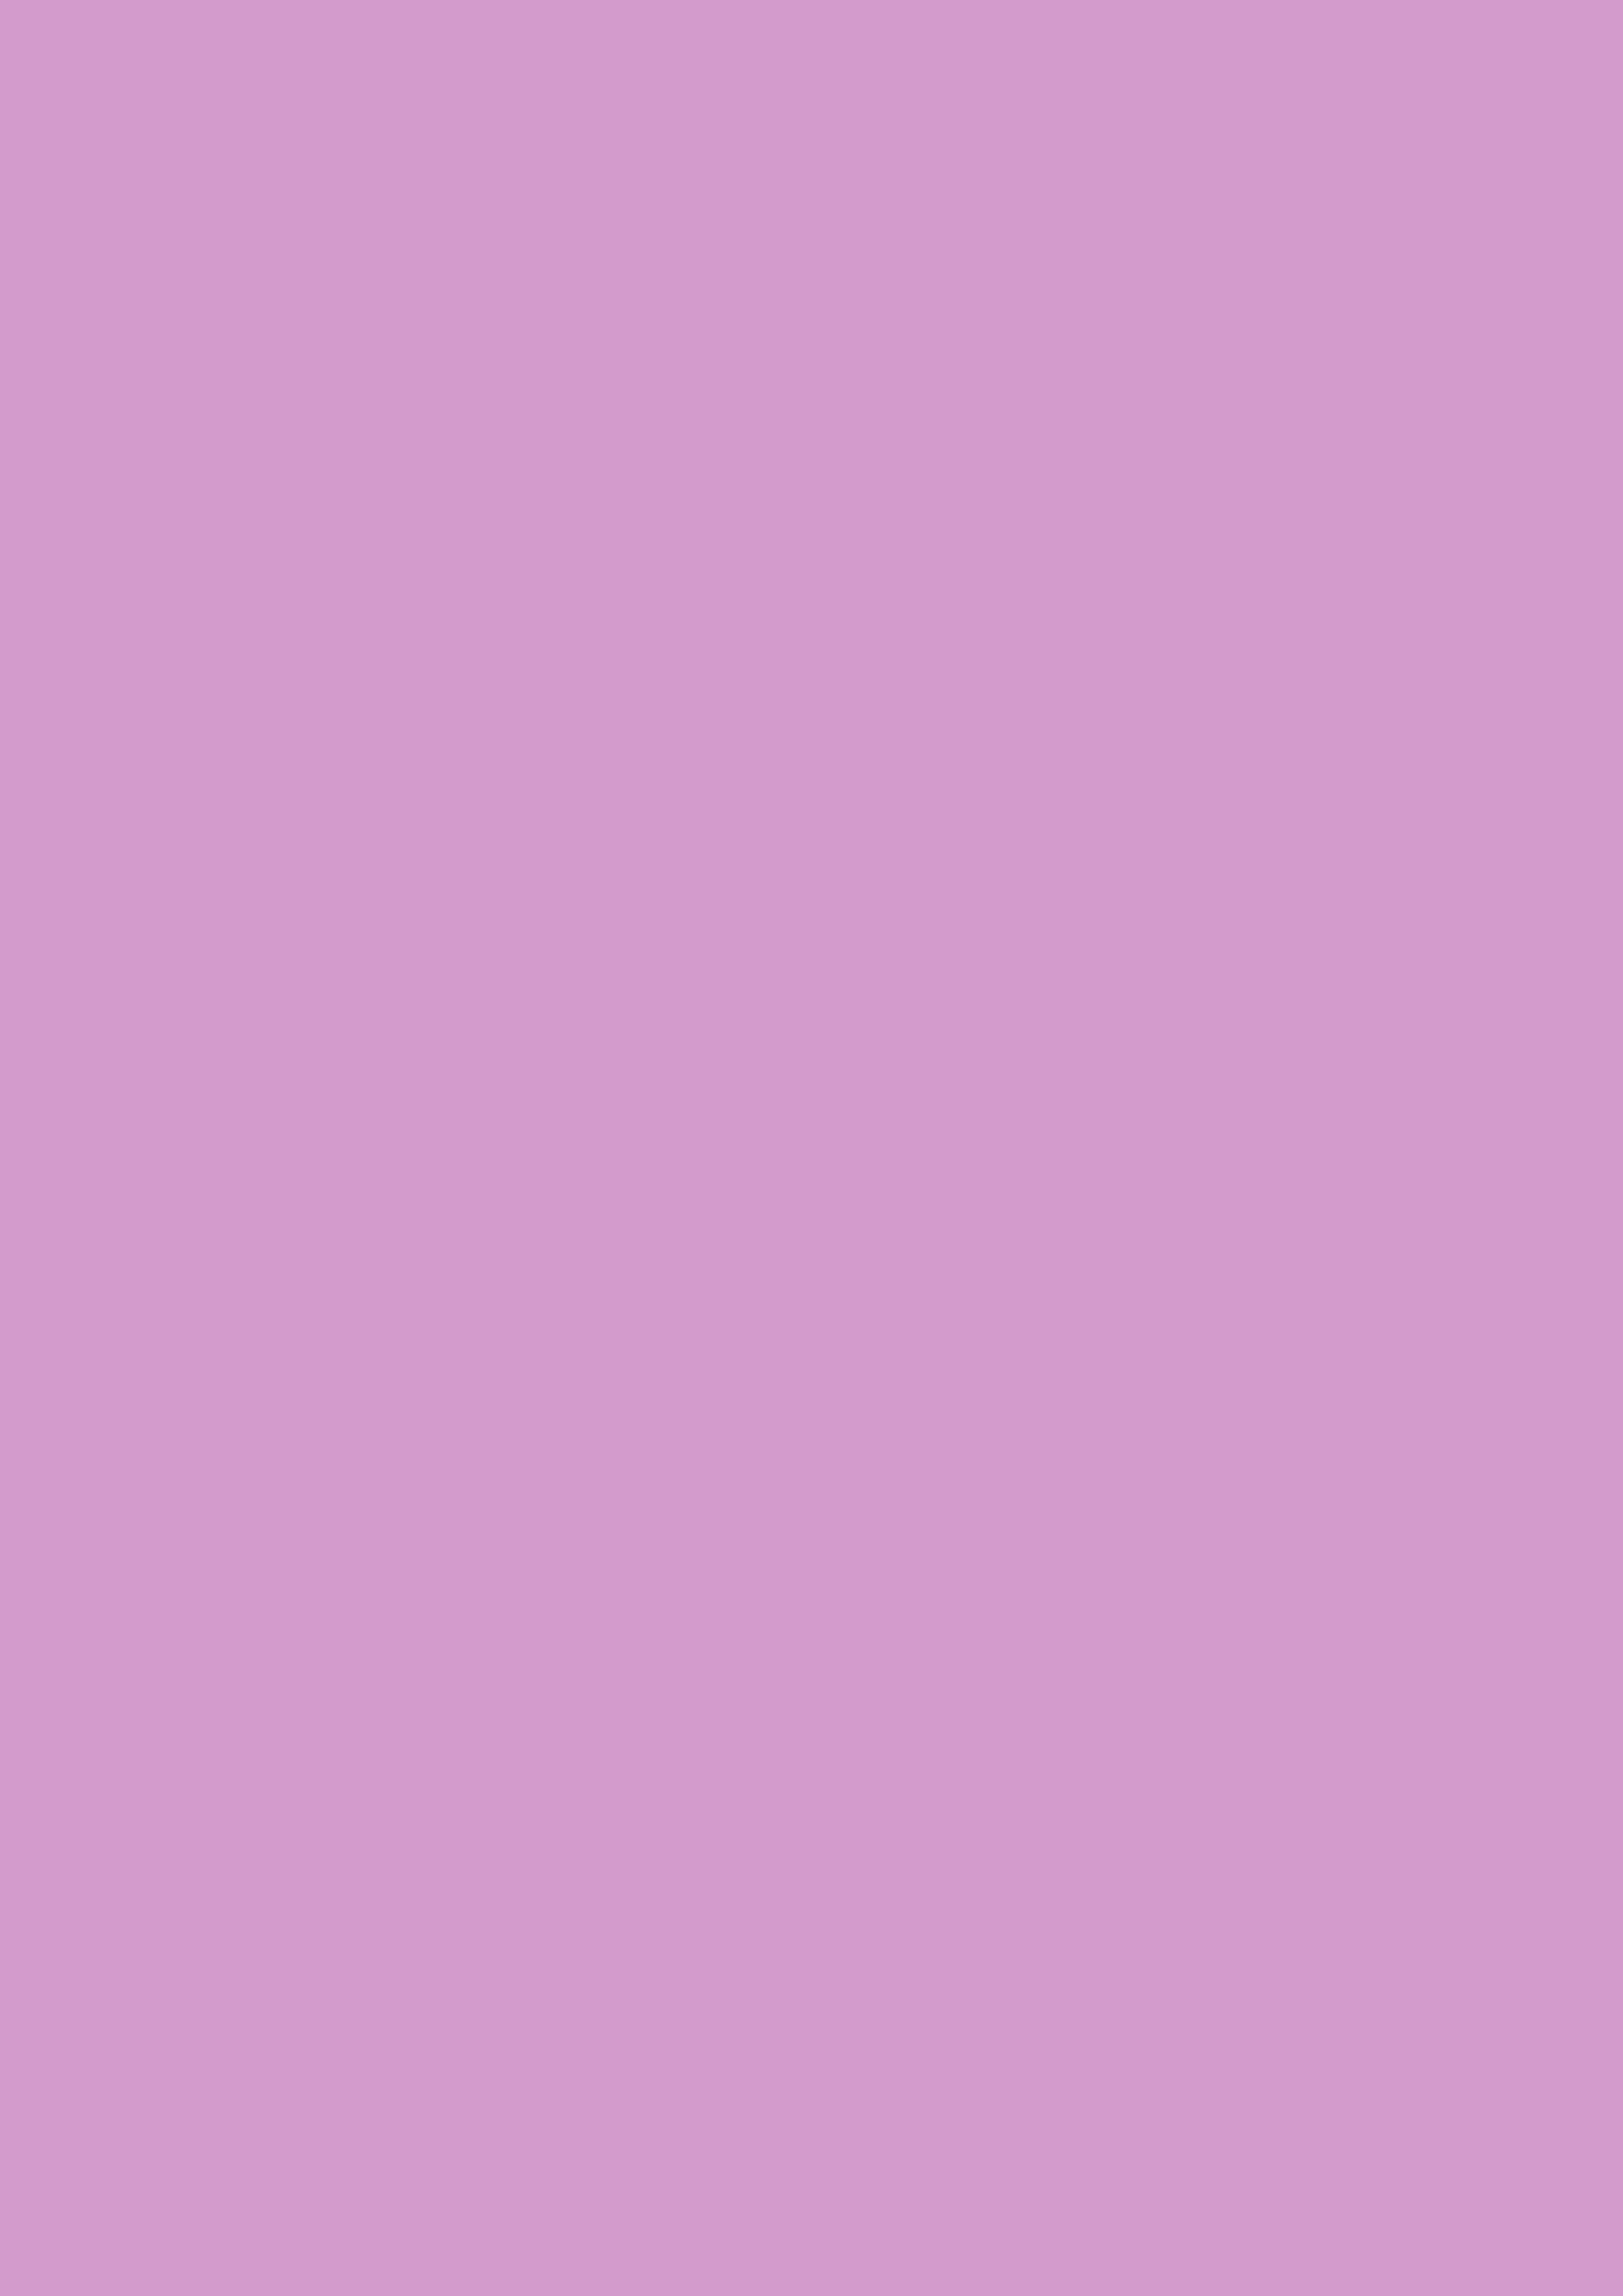 2480x3508 Light Medium Orchid Solid Color Background